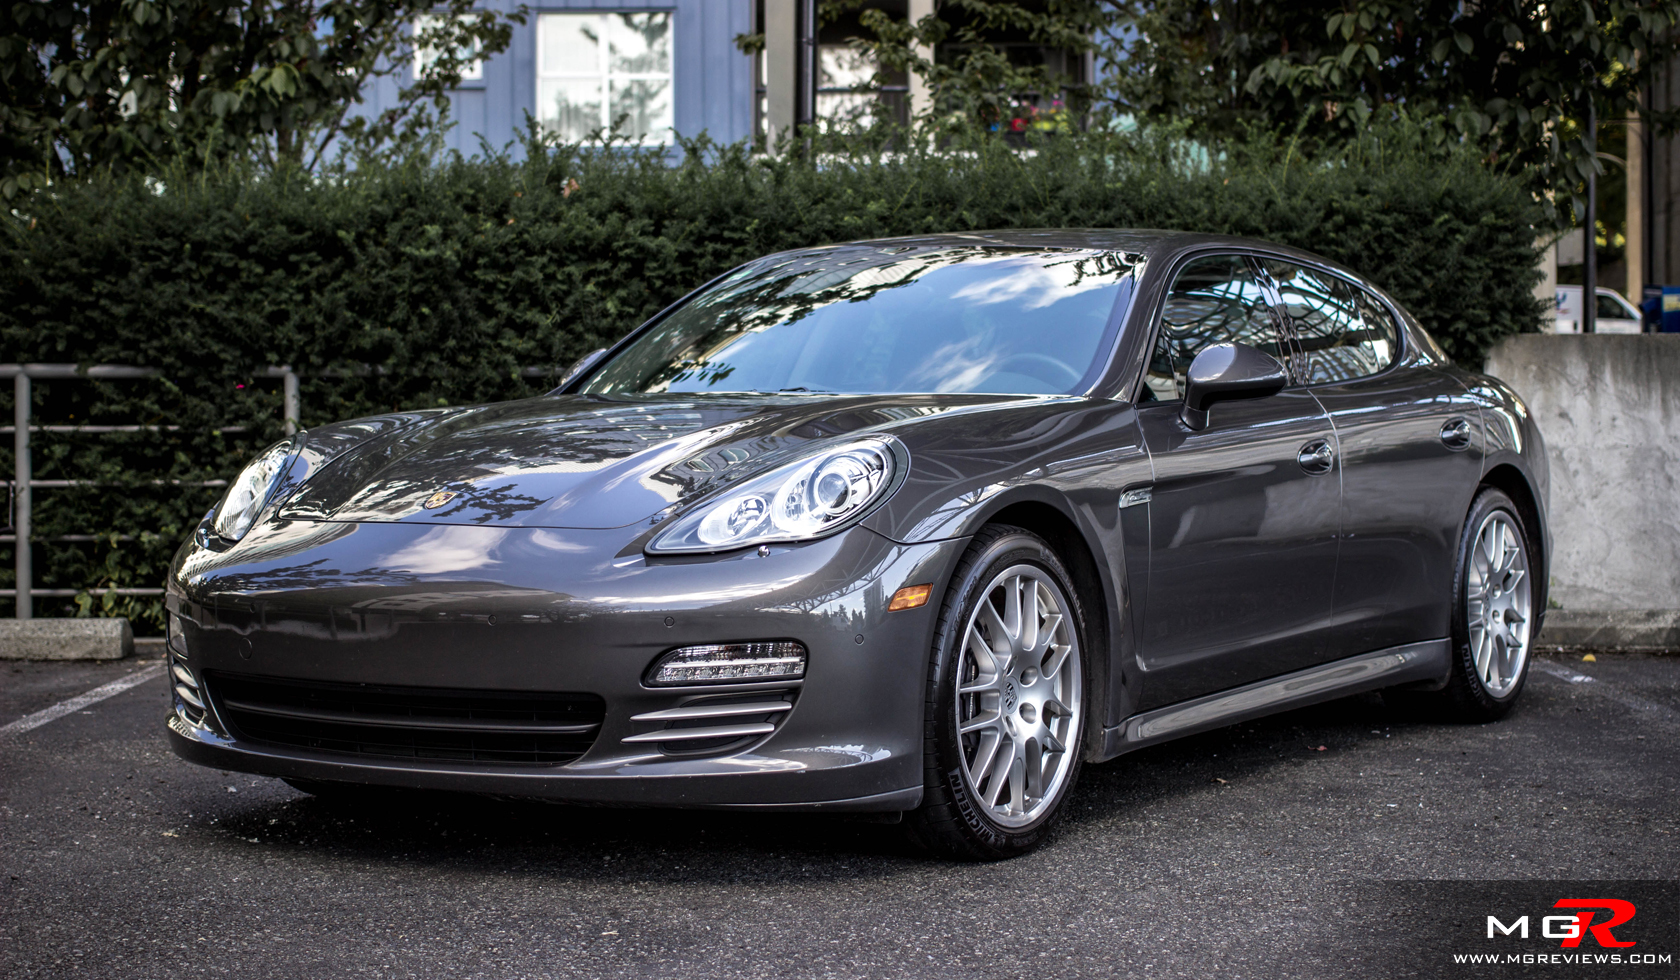 review 2013 porsche panamera 4 m g reviews. Black Bedroom Furniture Sets. Home Design Ideas